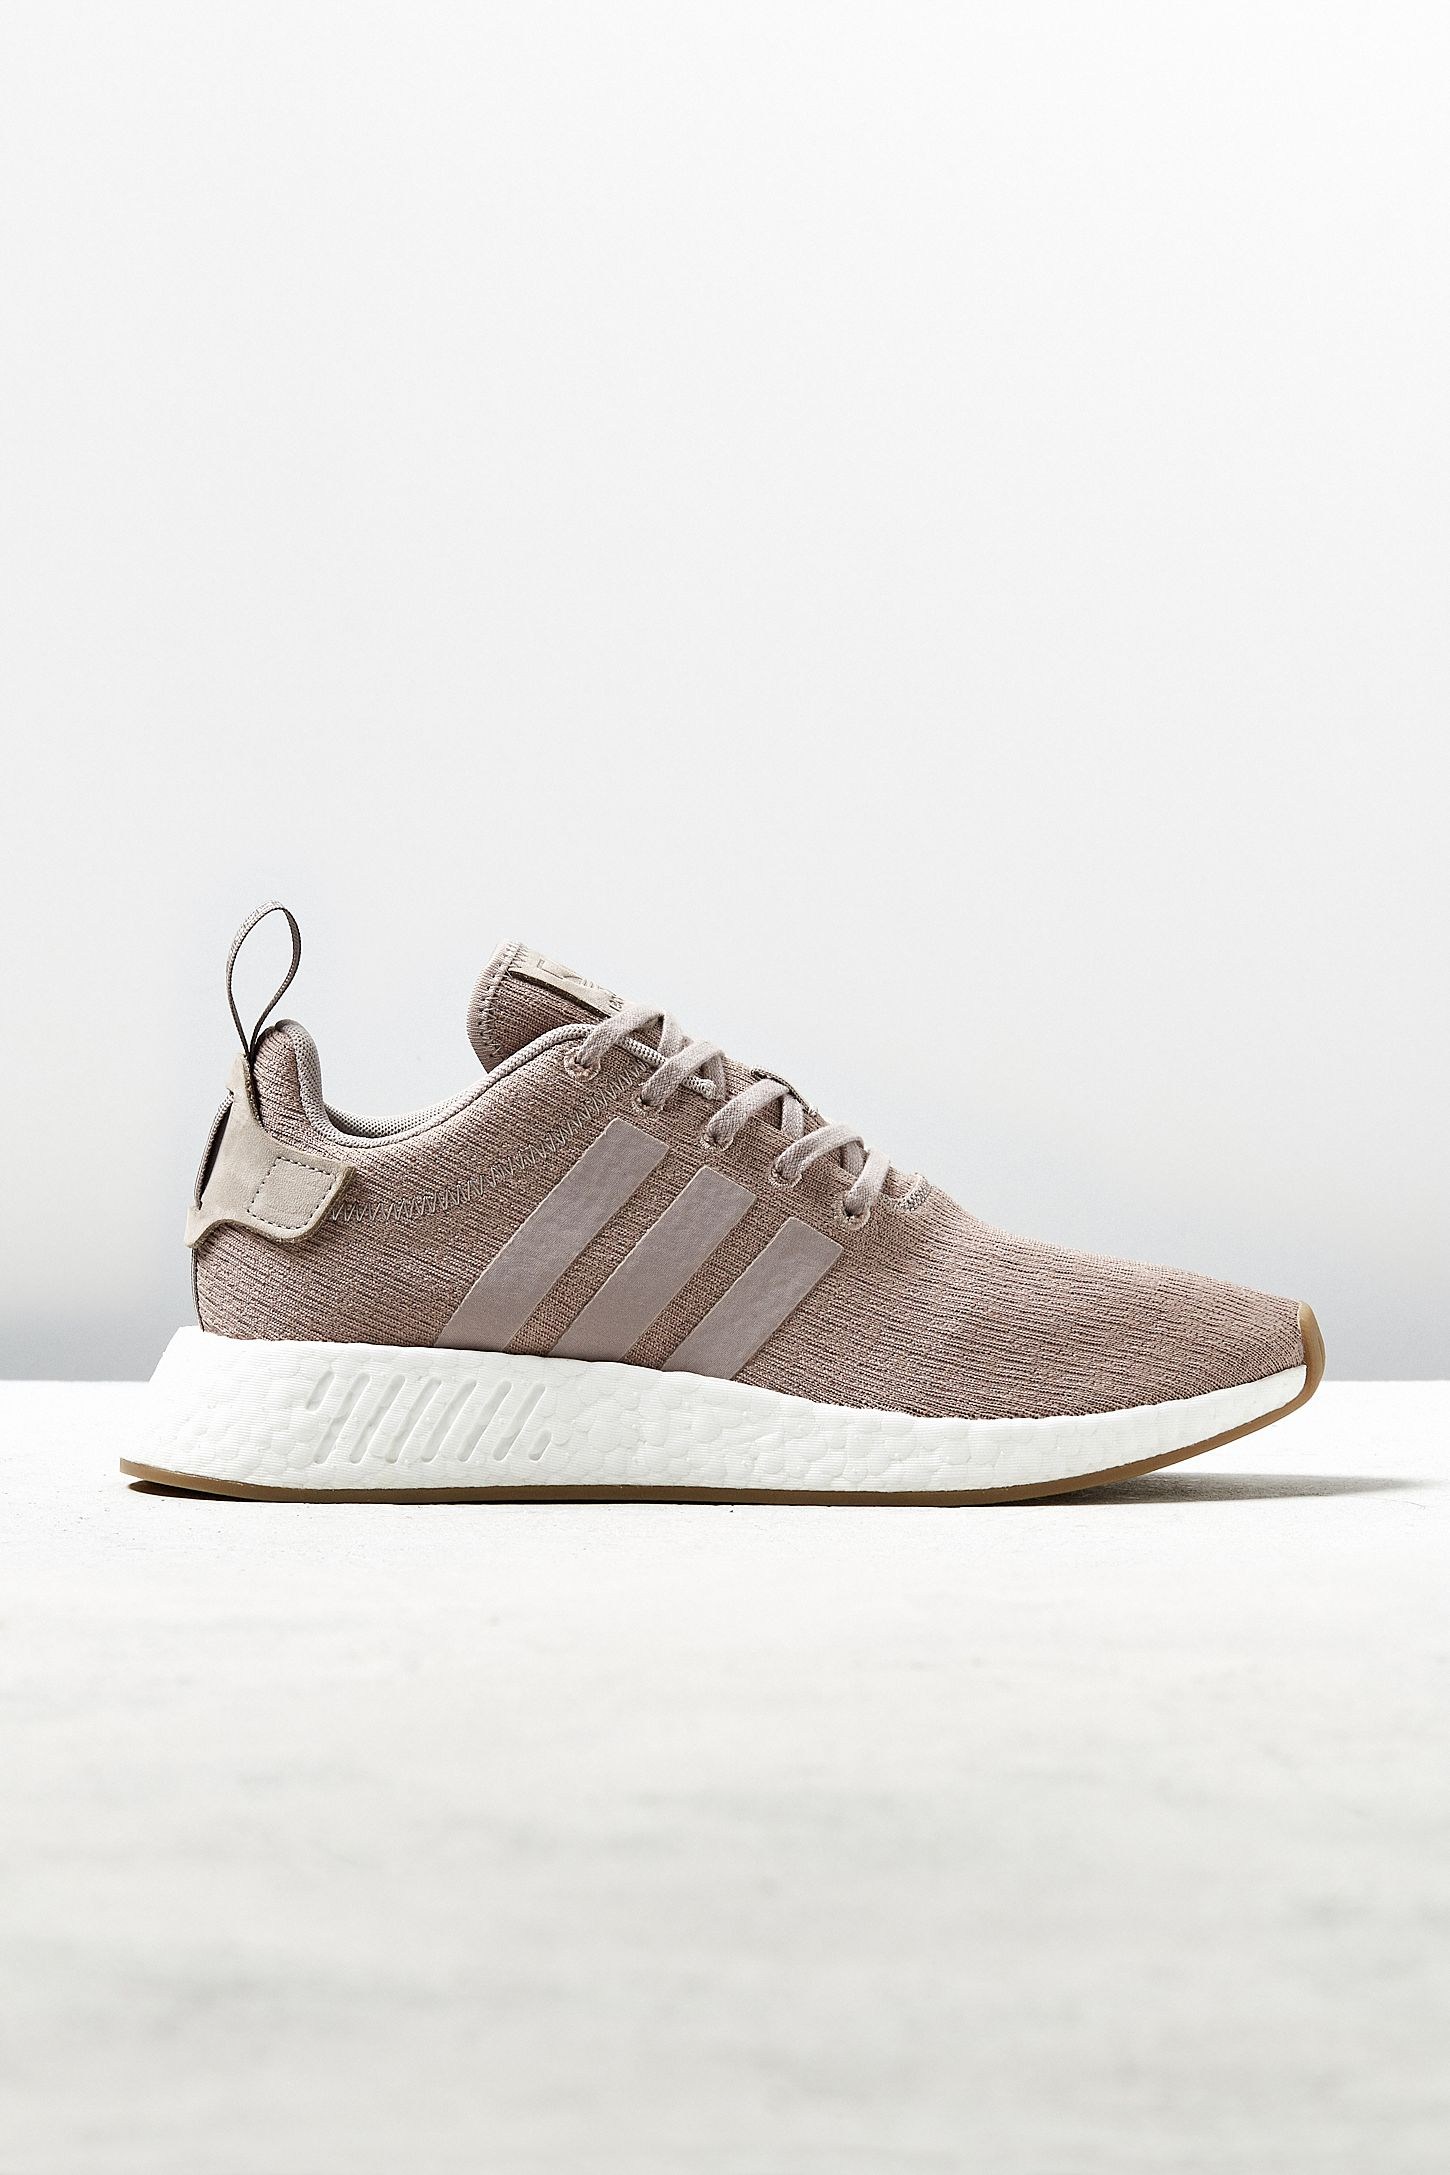 d772ba705b544 Adidas Originals Nmd Urban Outfitters